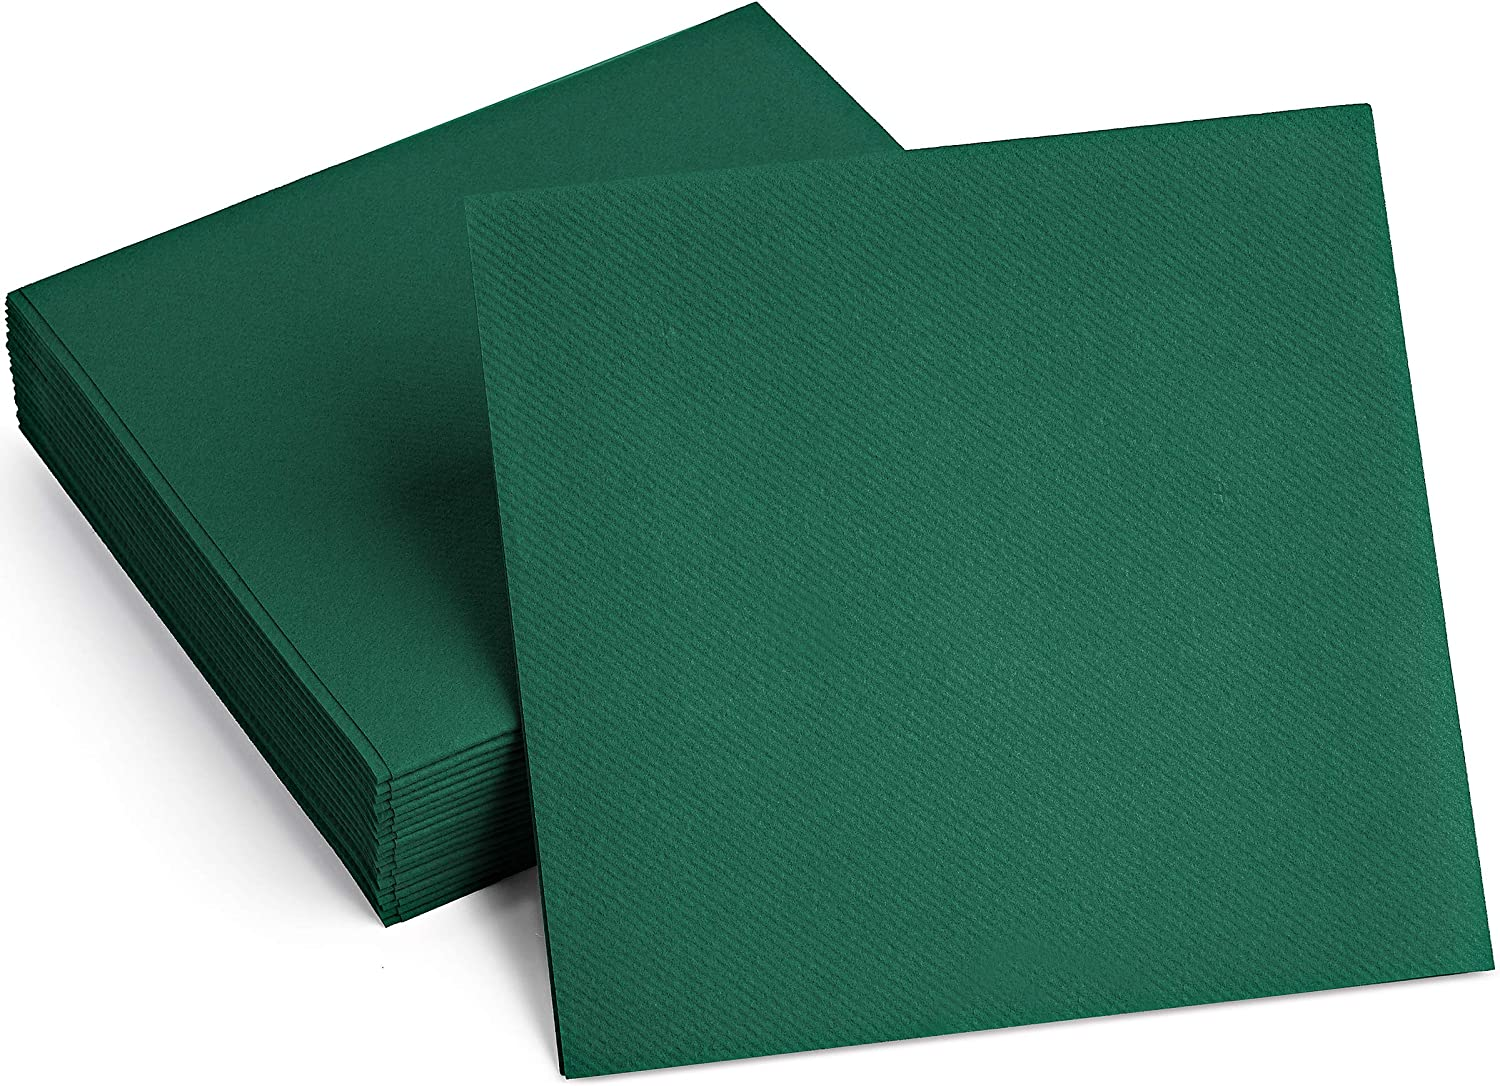 100 Linen-Feel Colored Paper Napkins - Decorative Cloth-Like GREEN Luncheon Napkins - Soft And Absorbent. For Kitchen, Party, Wedding, Dinner Or Any Occasion. (Pack of 100)